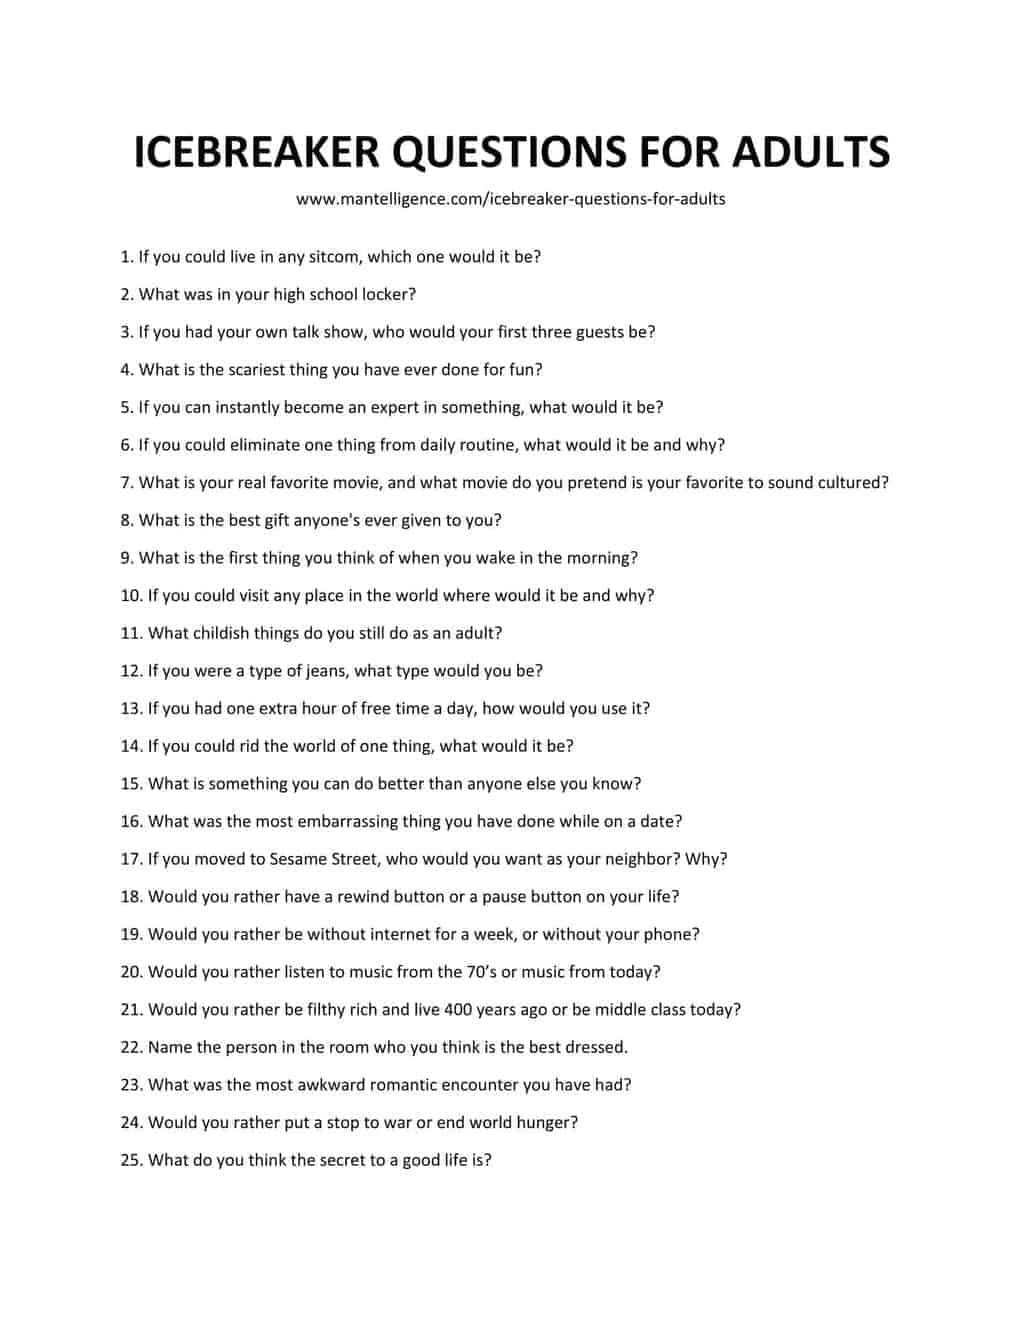 List of Icebreaker Questions For Adults